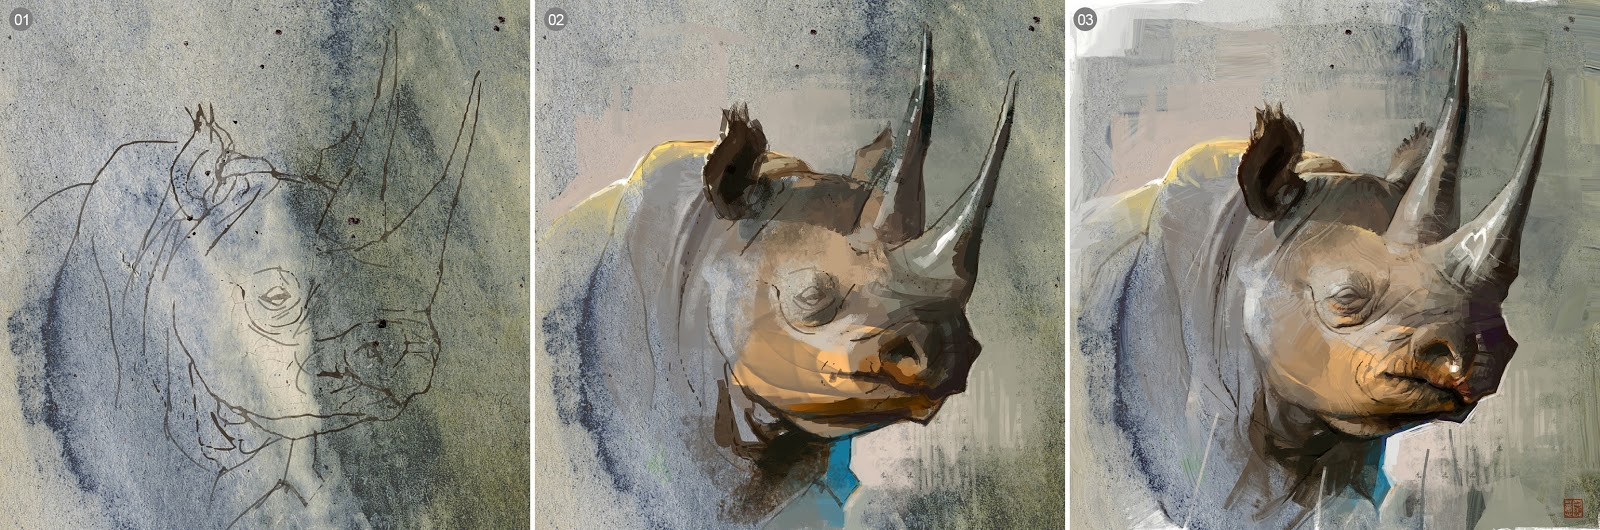 Rhino art prprocess by Thierry